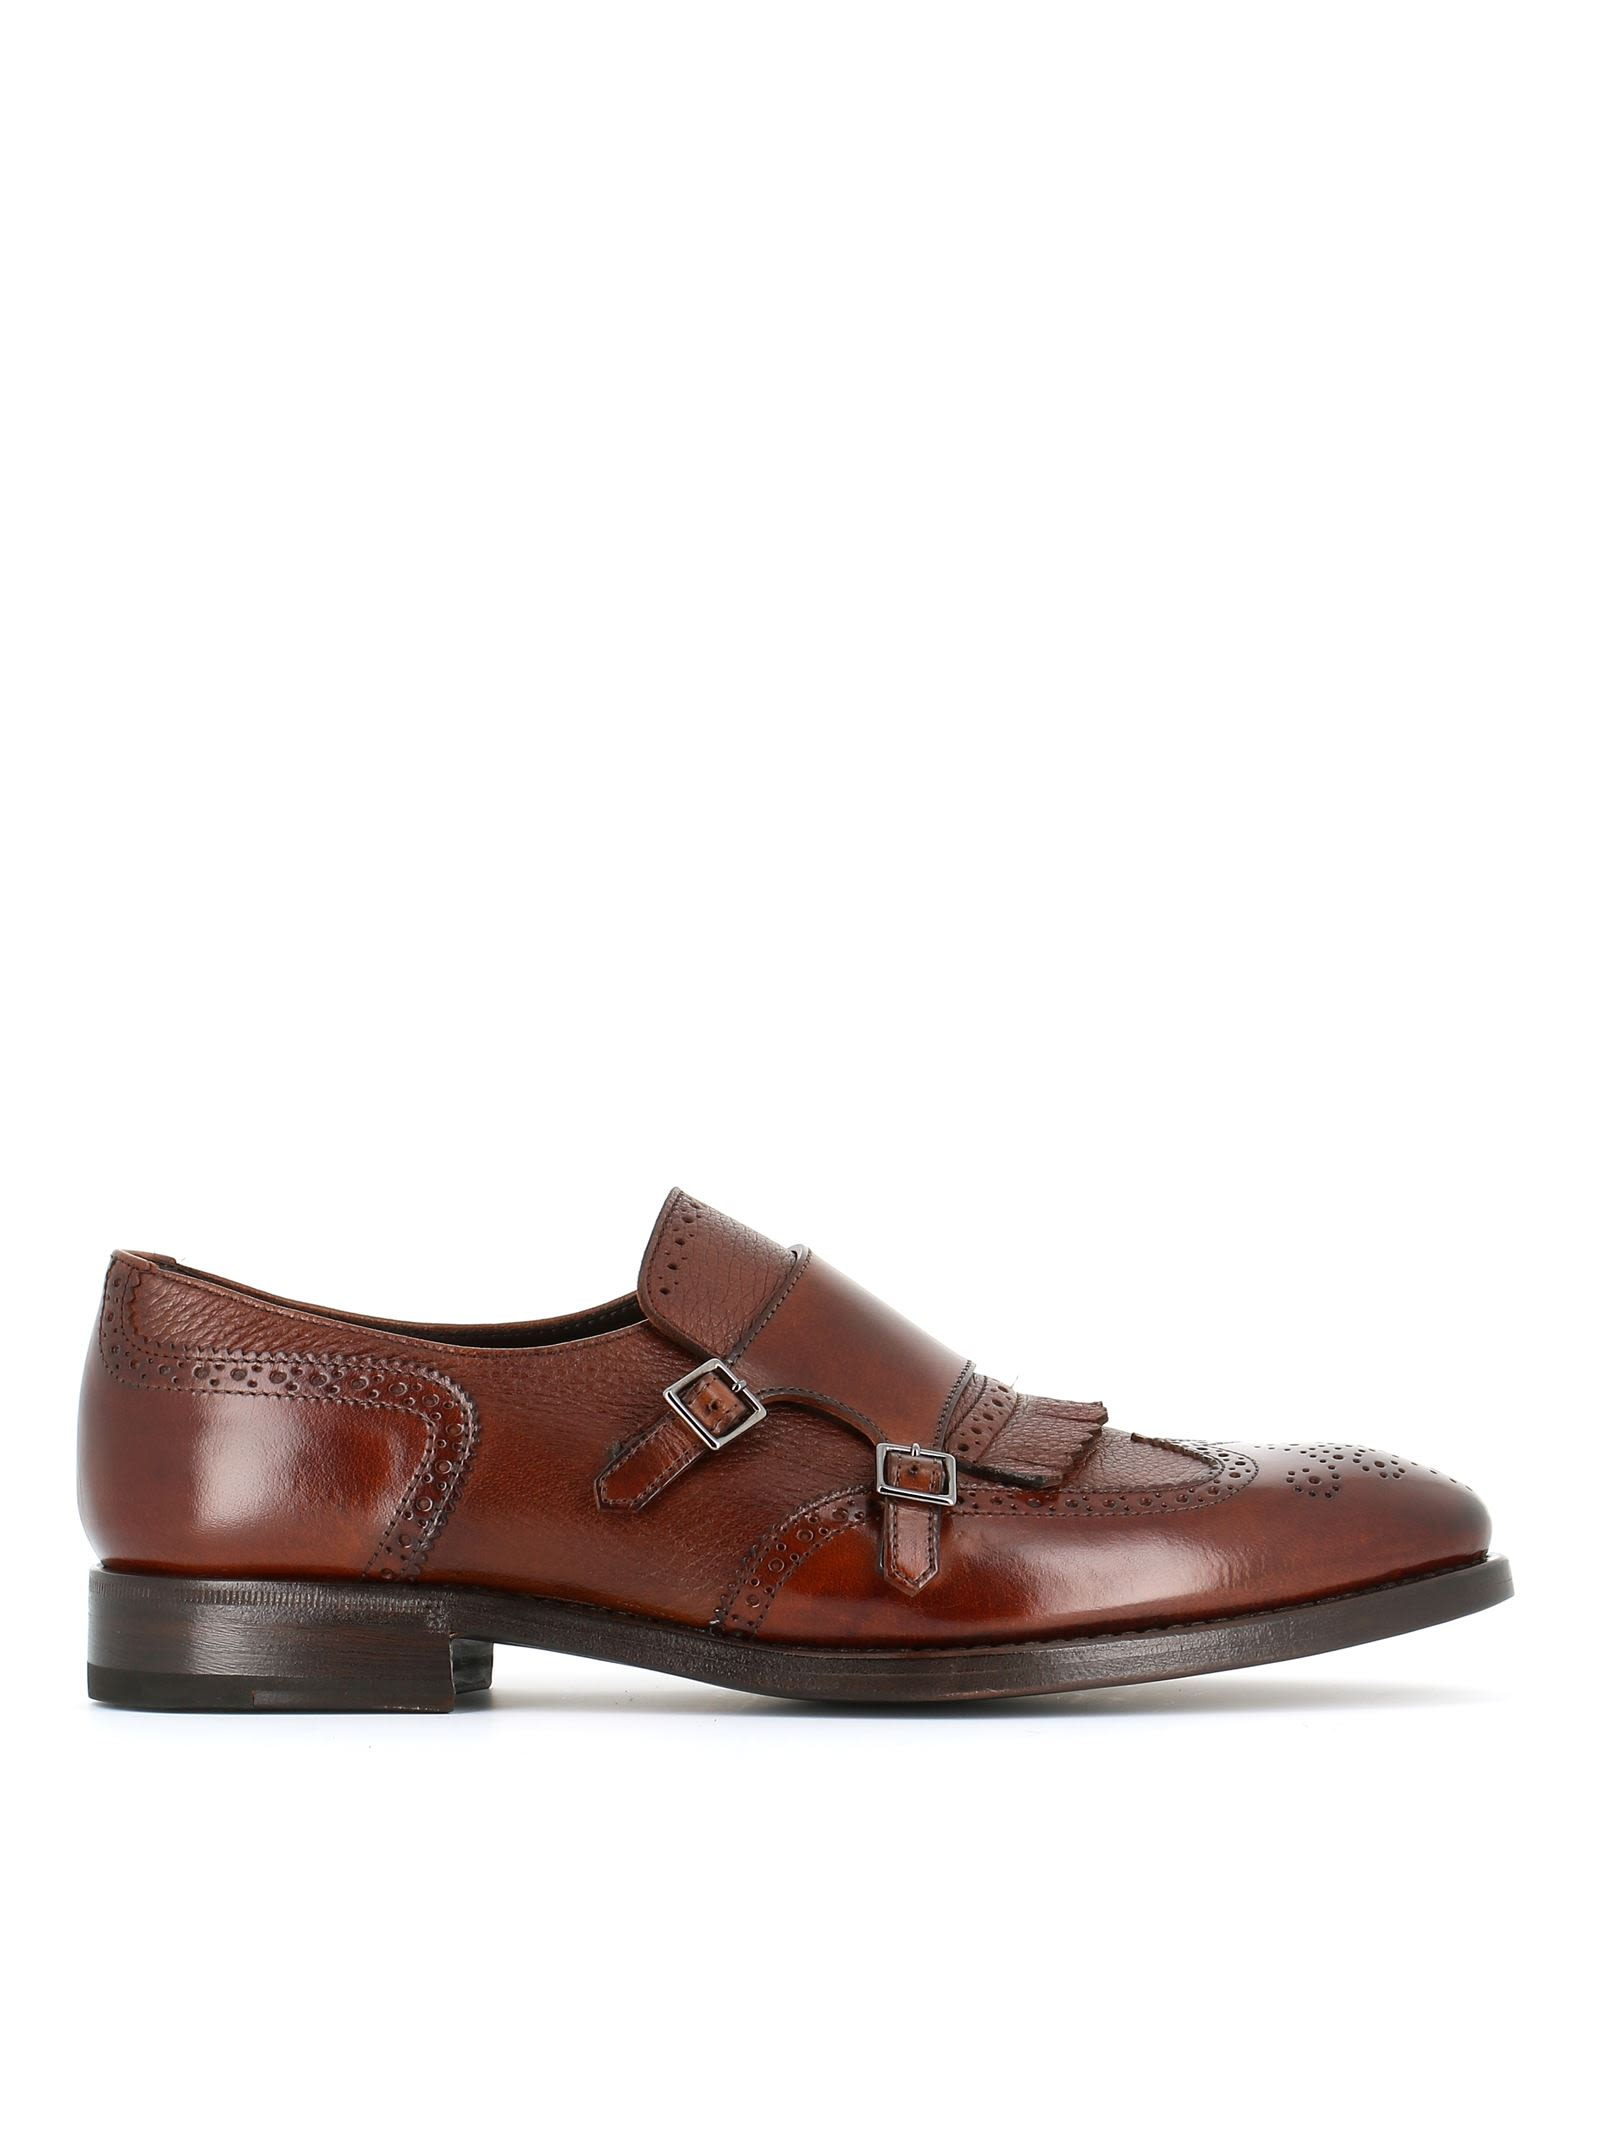 Henderson Monk-fringed Loafers